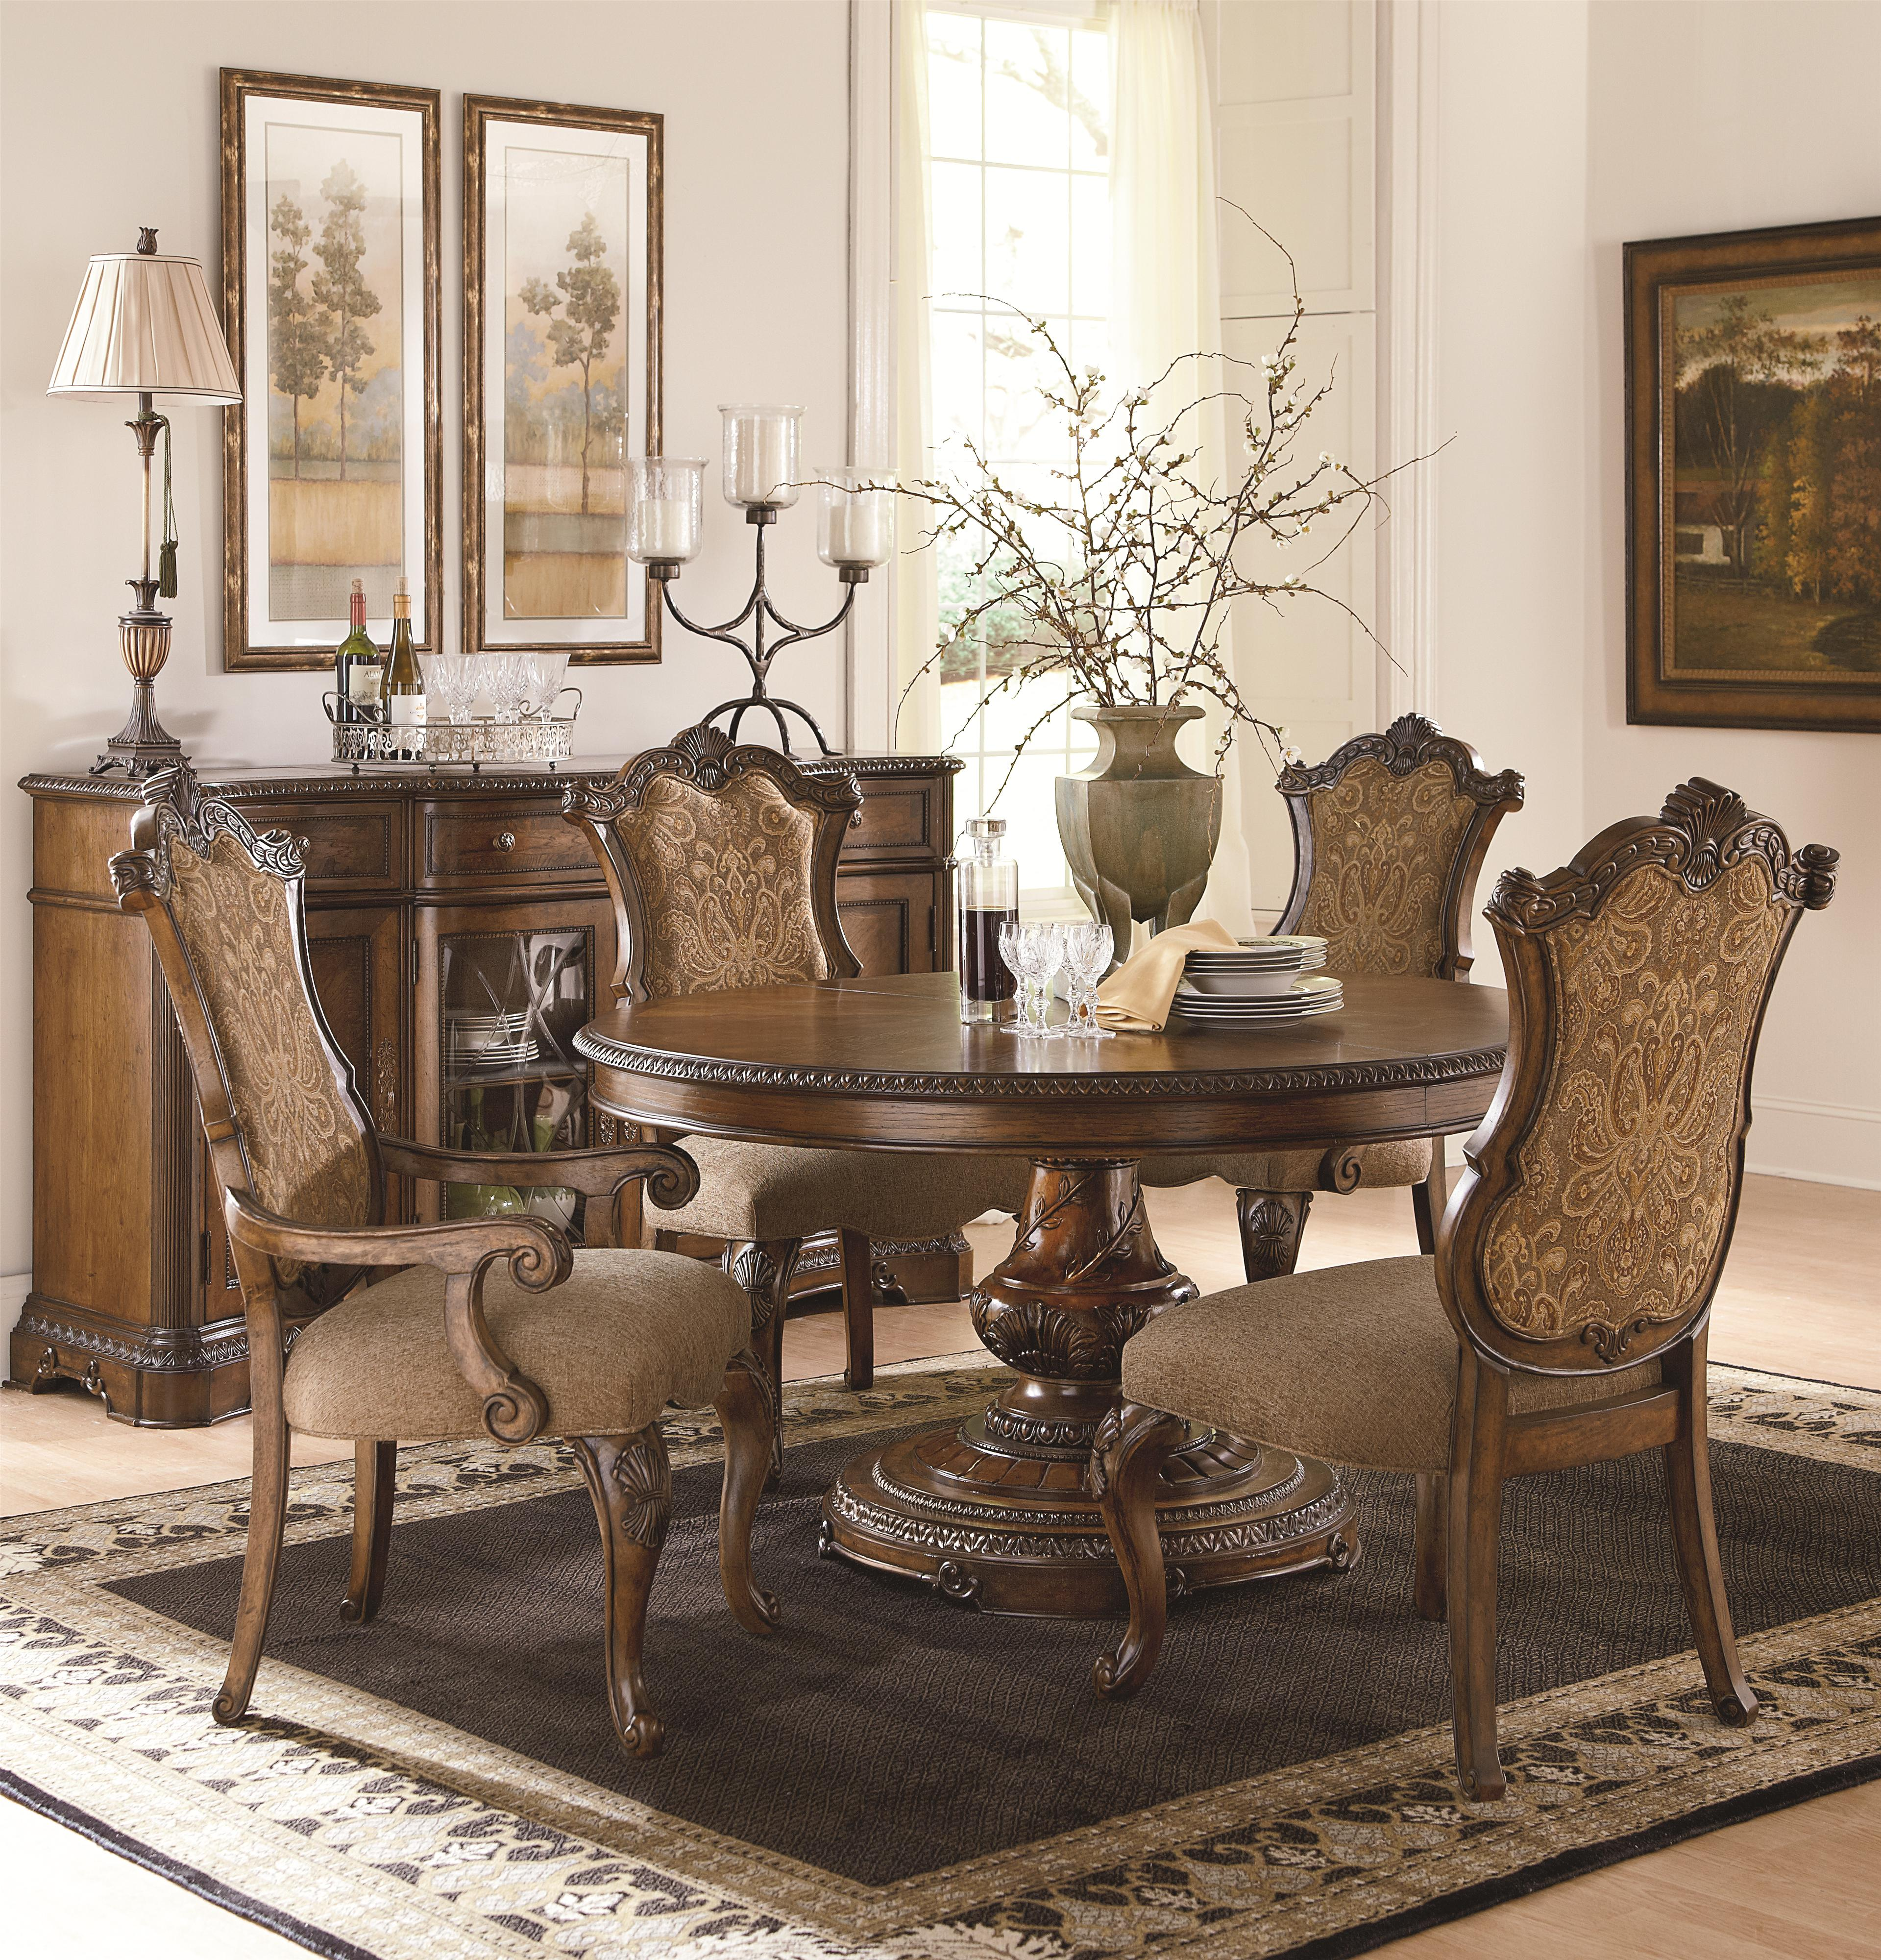 Legacy Classic Pemberleigh Formal Dining Room Group - Item Number: 3100 Formal Dining Room Group 8